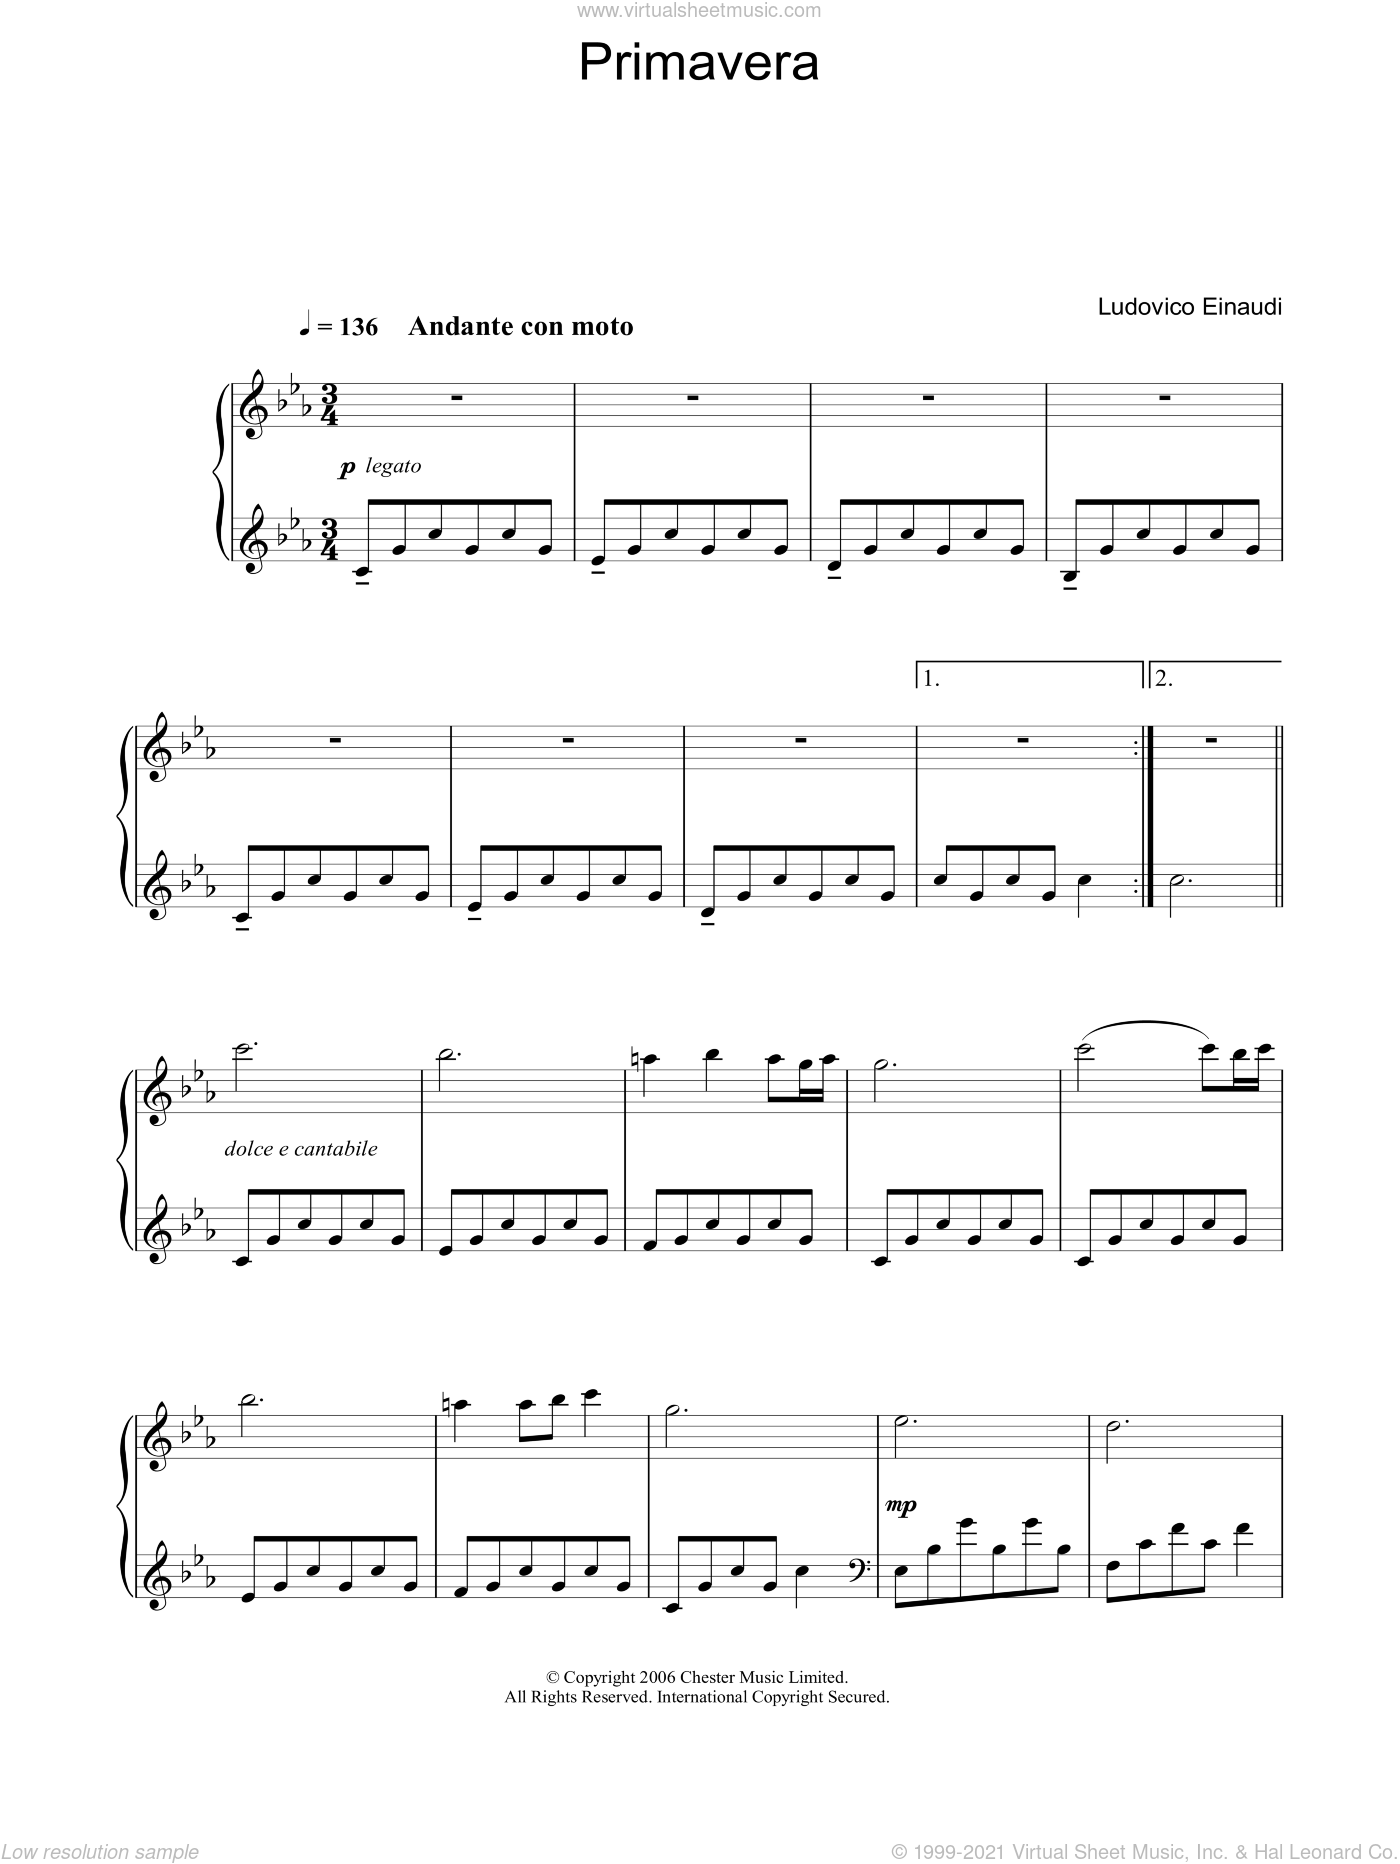 Primavera sheet music for piano solo by Ludovico Einaudi